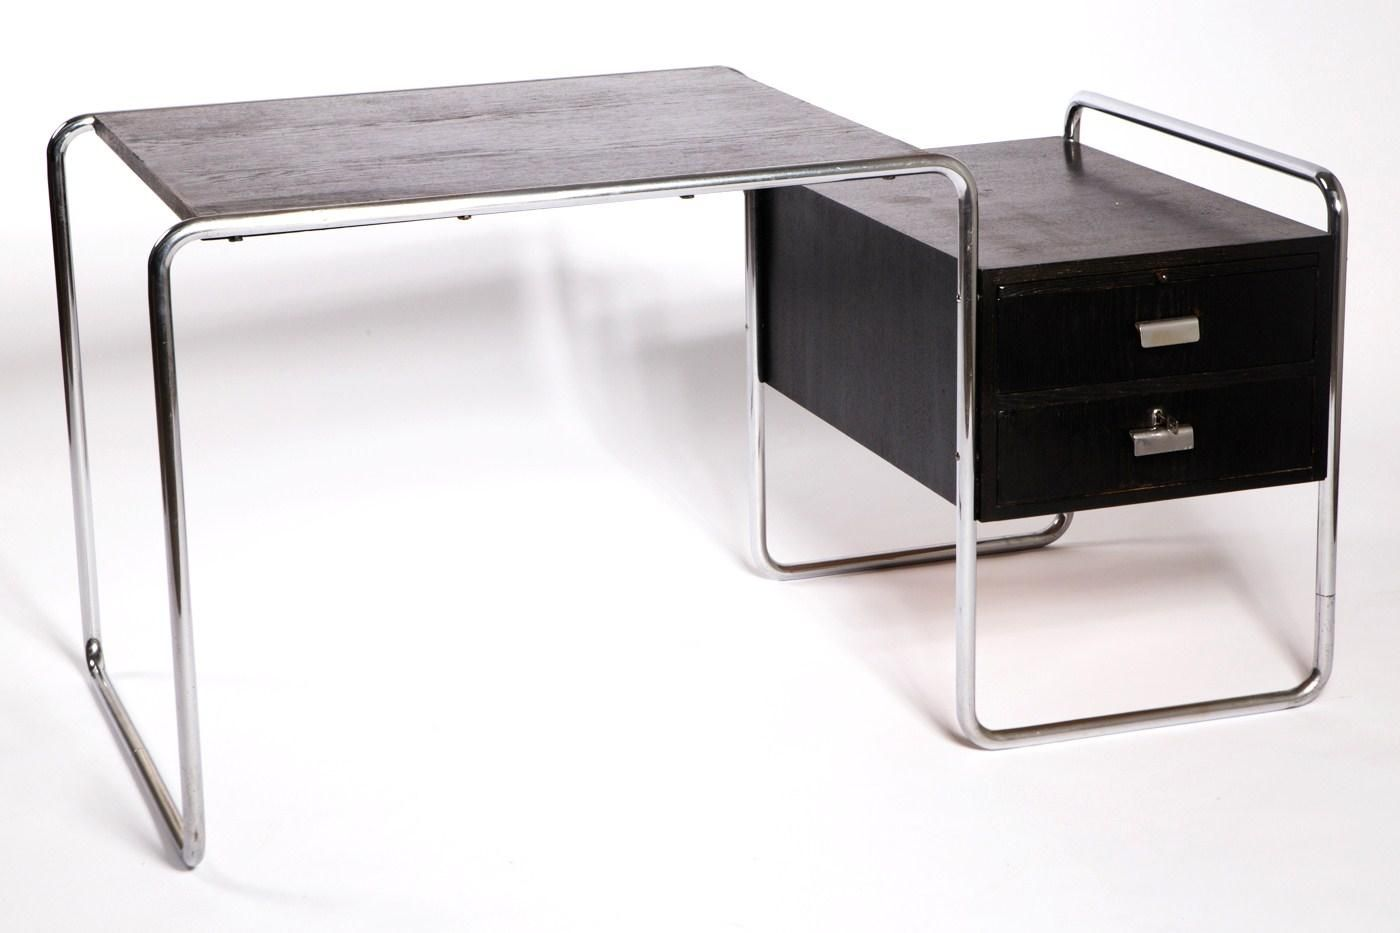 Thonet Esstische B65 Writing Desk By Marcel Breuer For Thonet 1930s 1